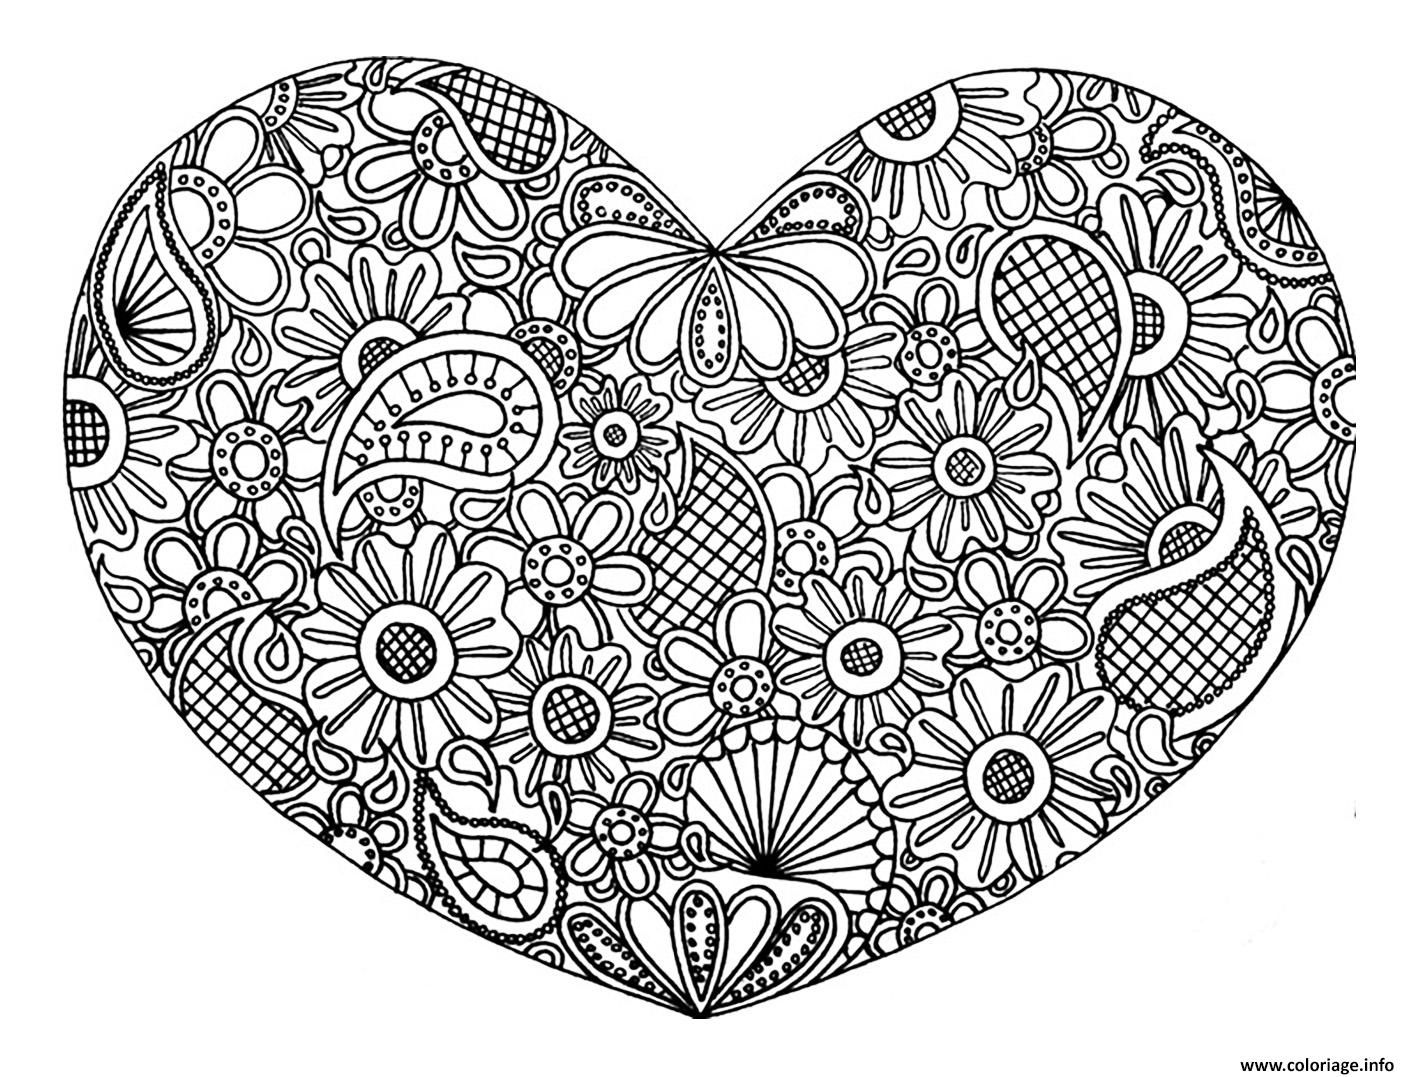 Coloriage Adulte Zen A Imprimer Gratuit.Epingle Sur Coloring Sheets Adult